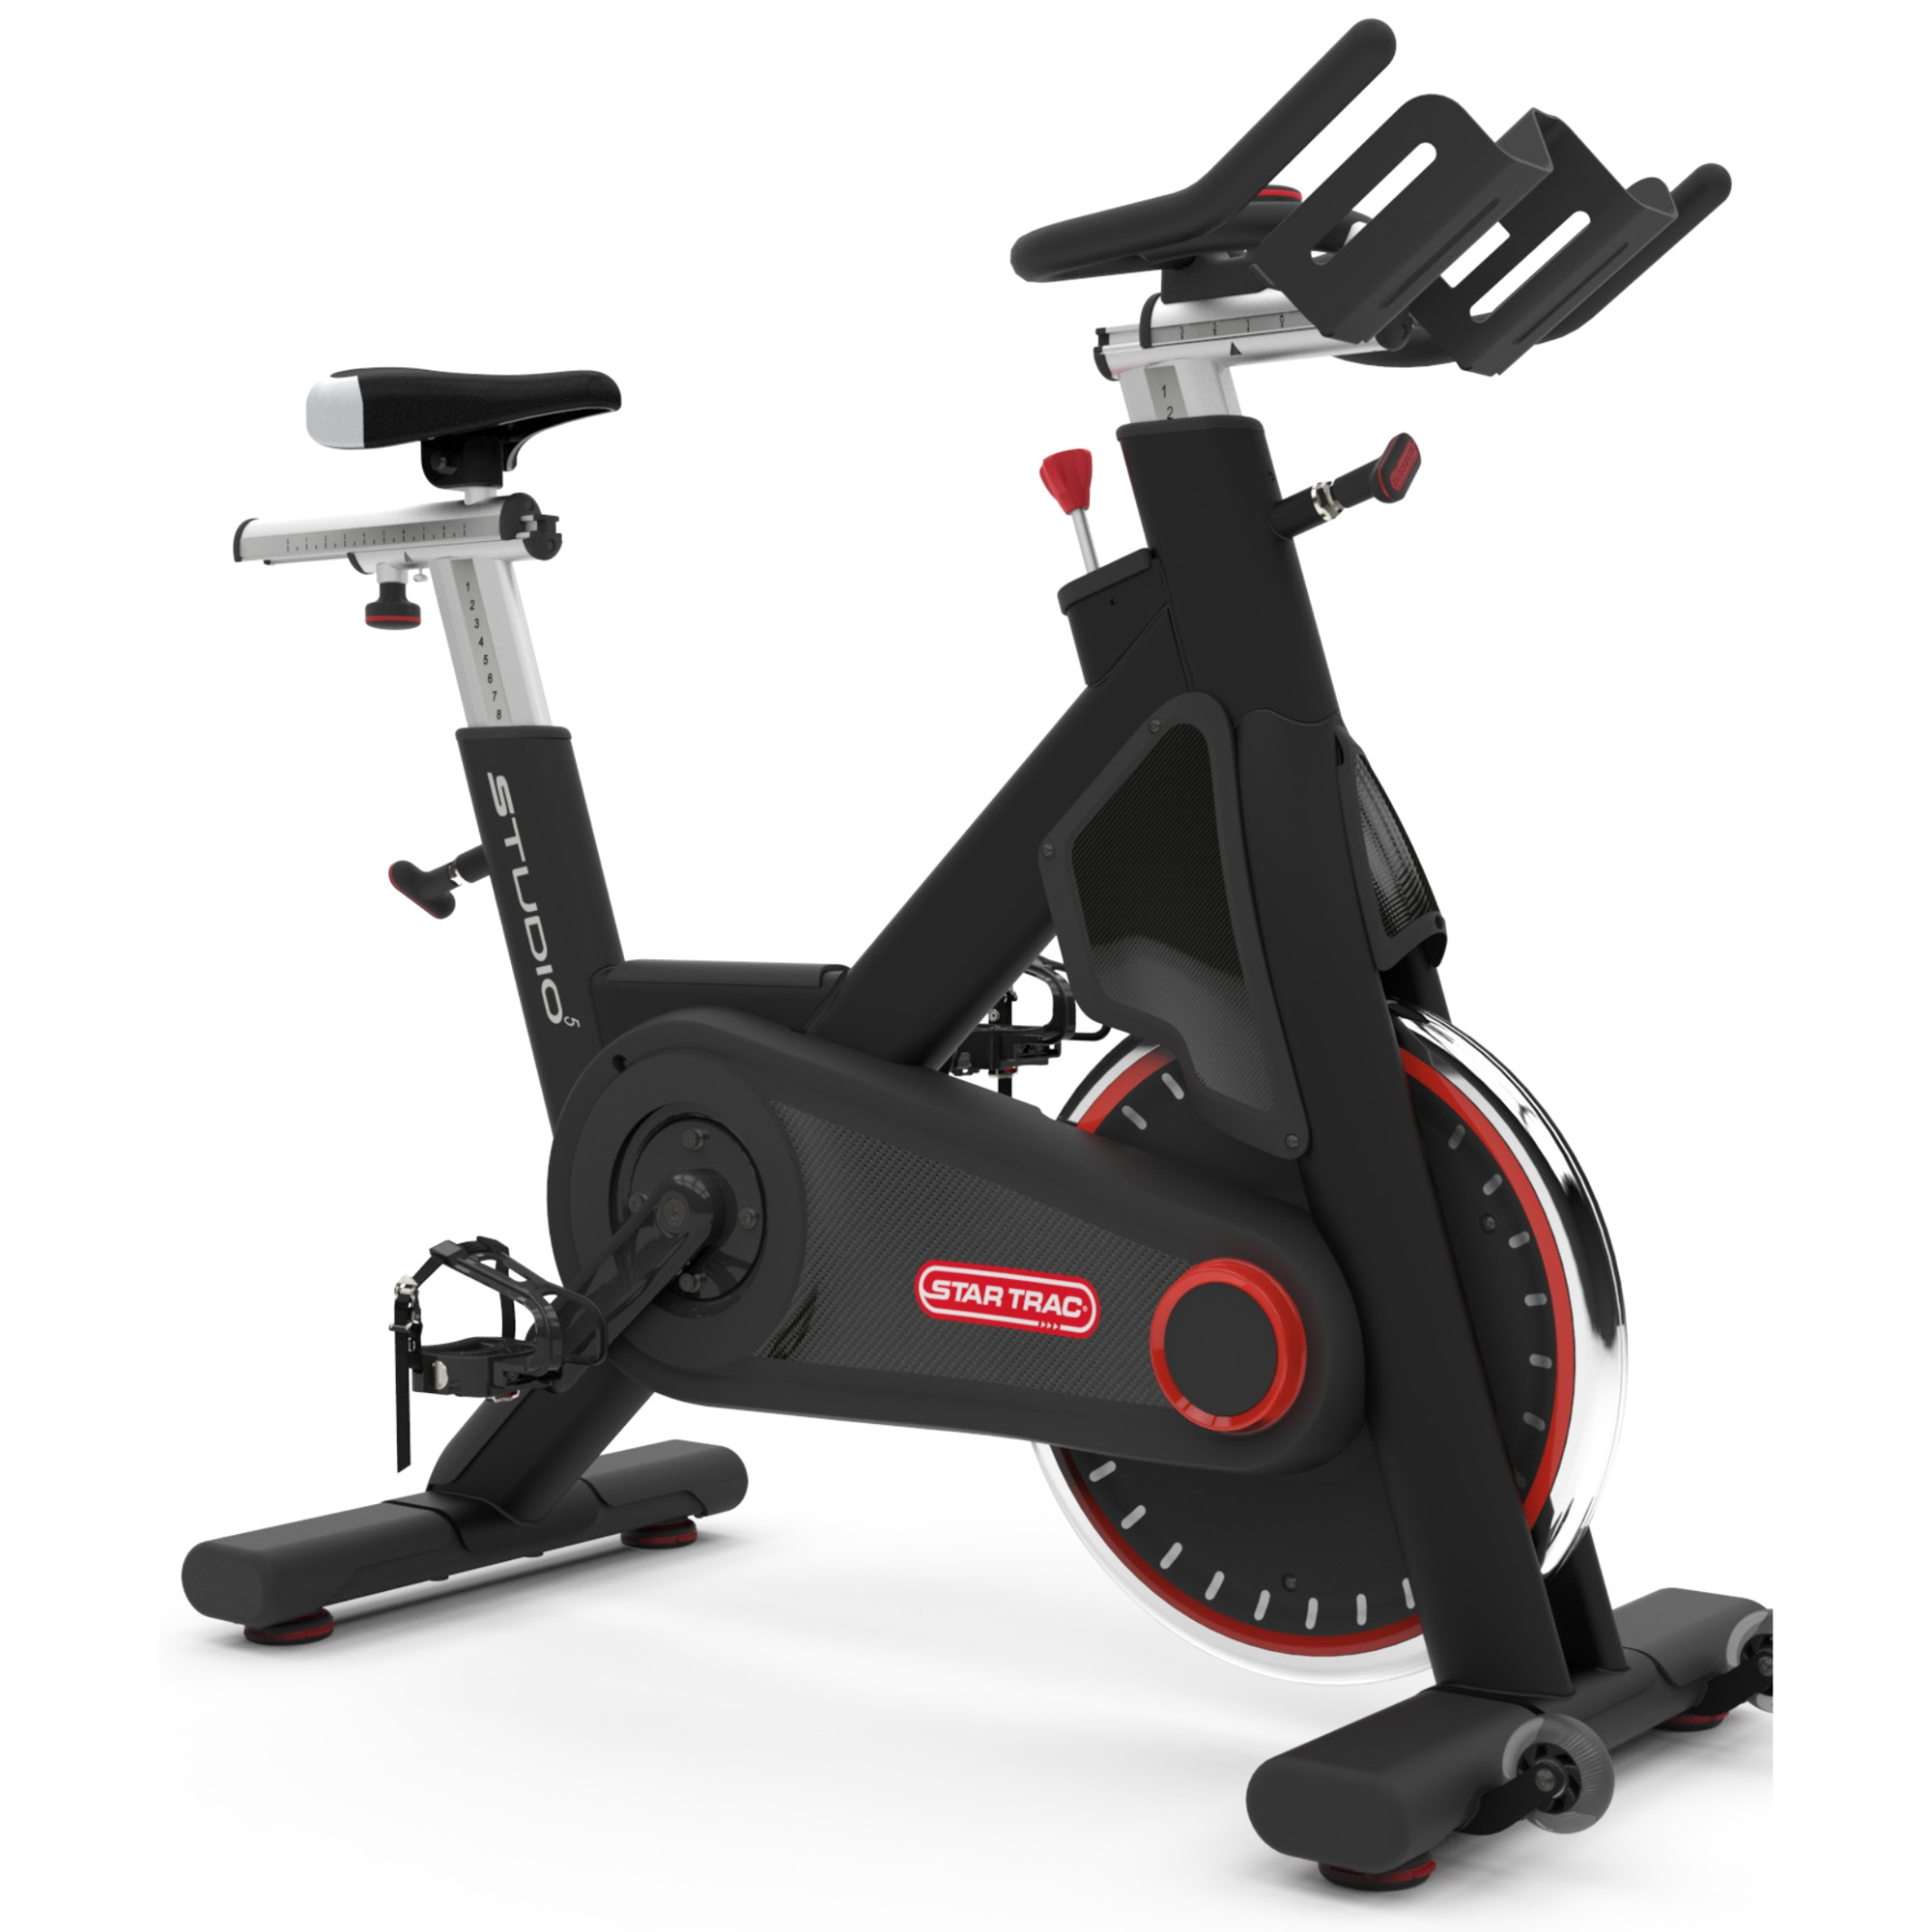 Gym Mats South Africa: Star Trac Studio 5 Indoor Cycle